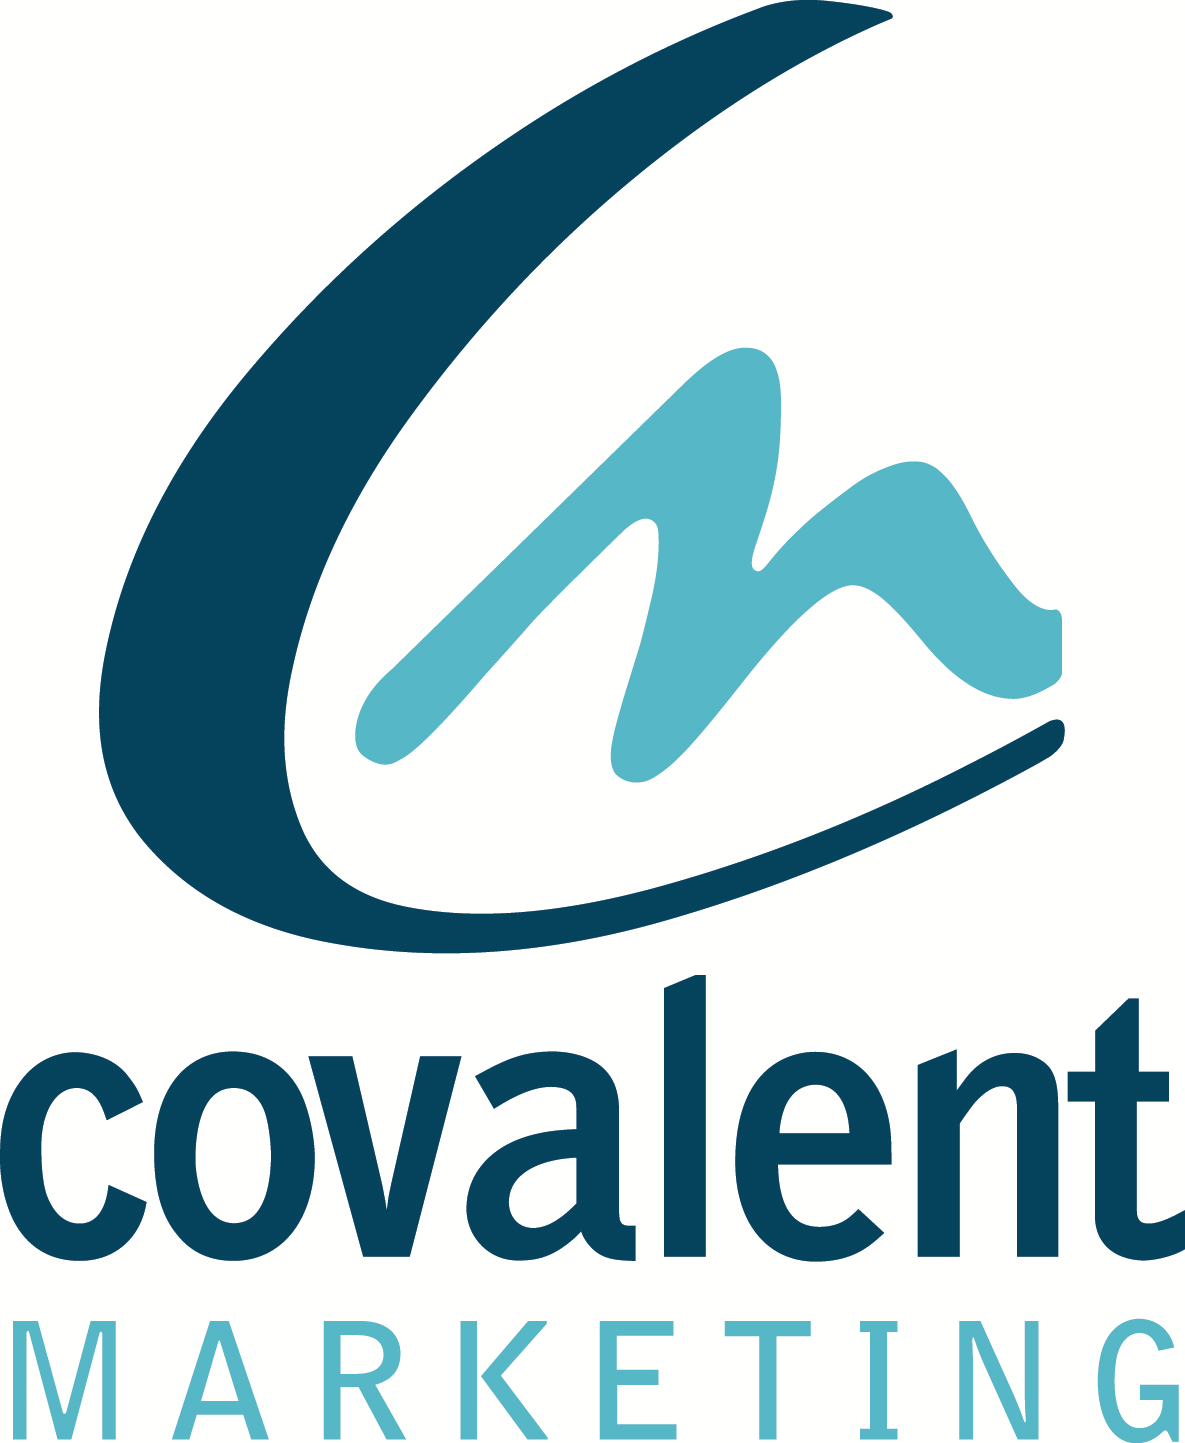 Covalent Marketing